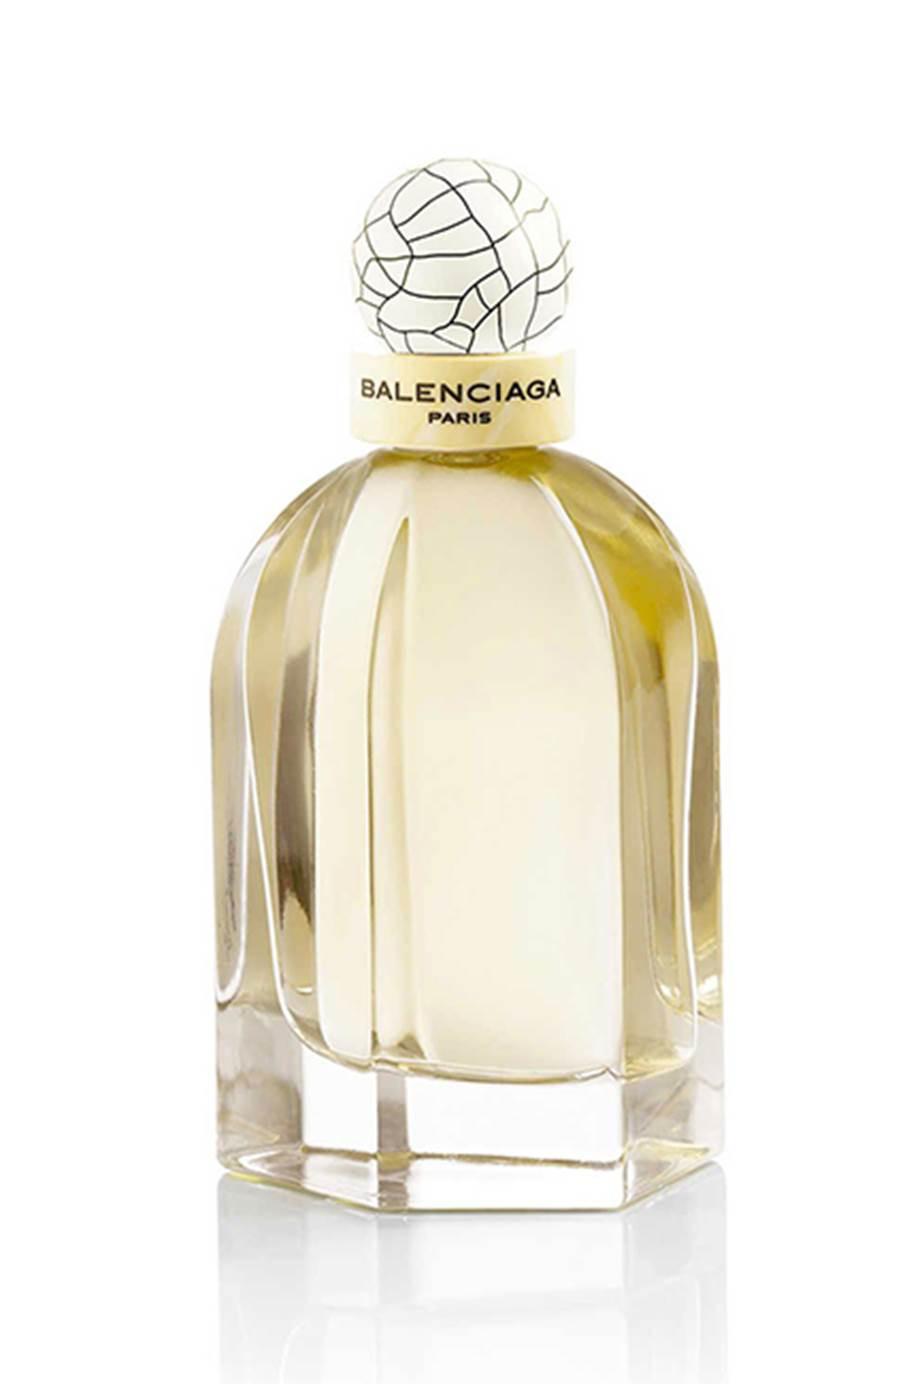 Minimalist and fragrant Balenciaga Paris EDT is a great wedding day perfume.